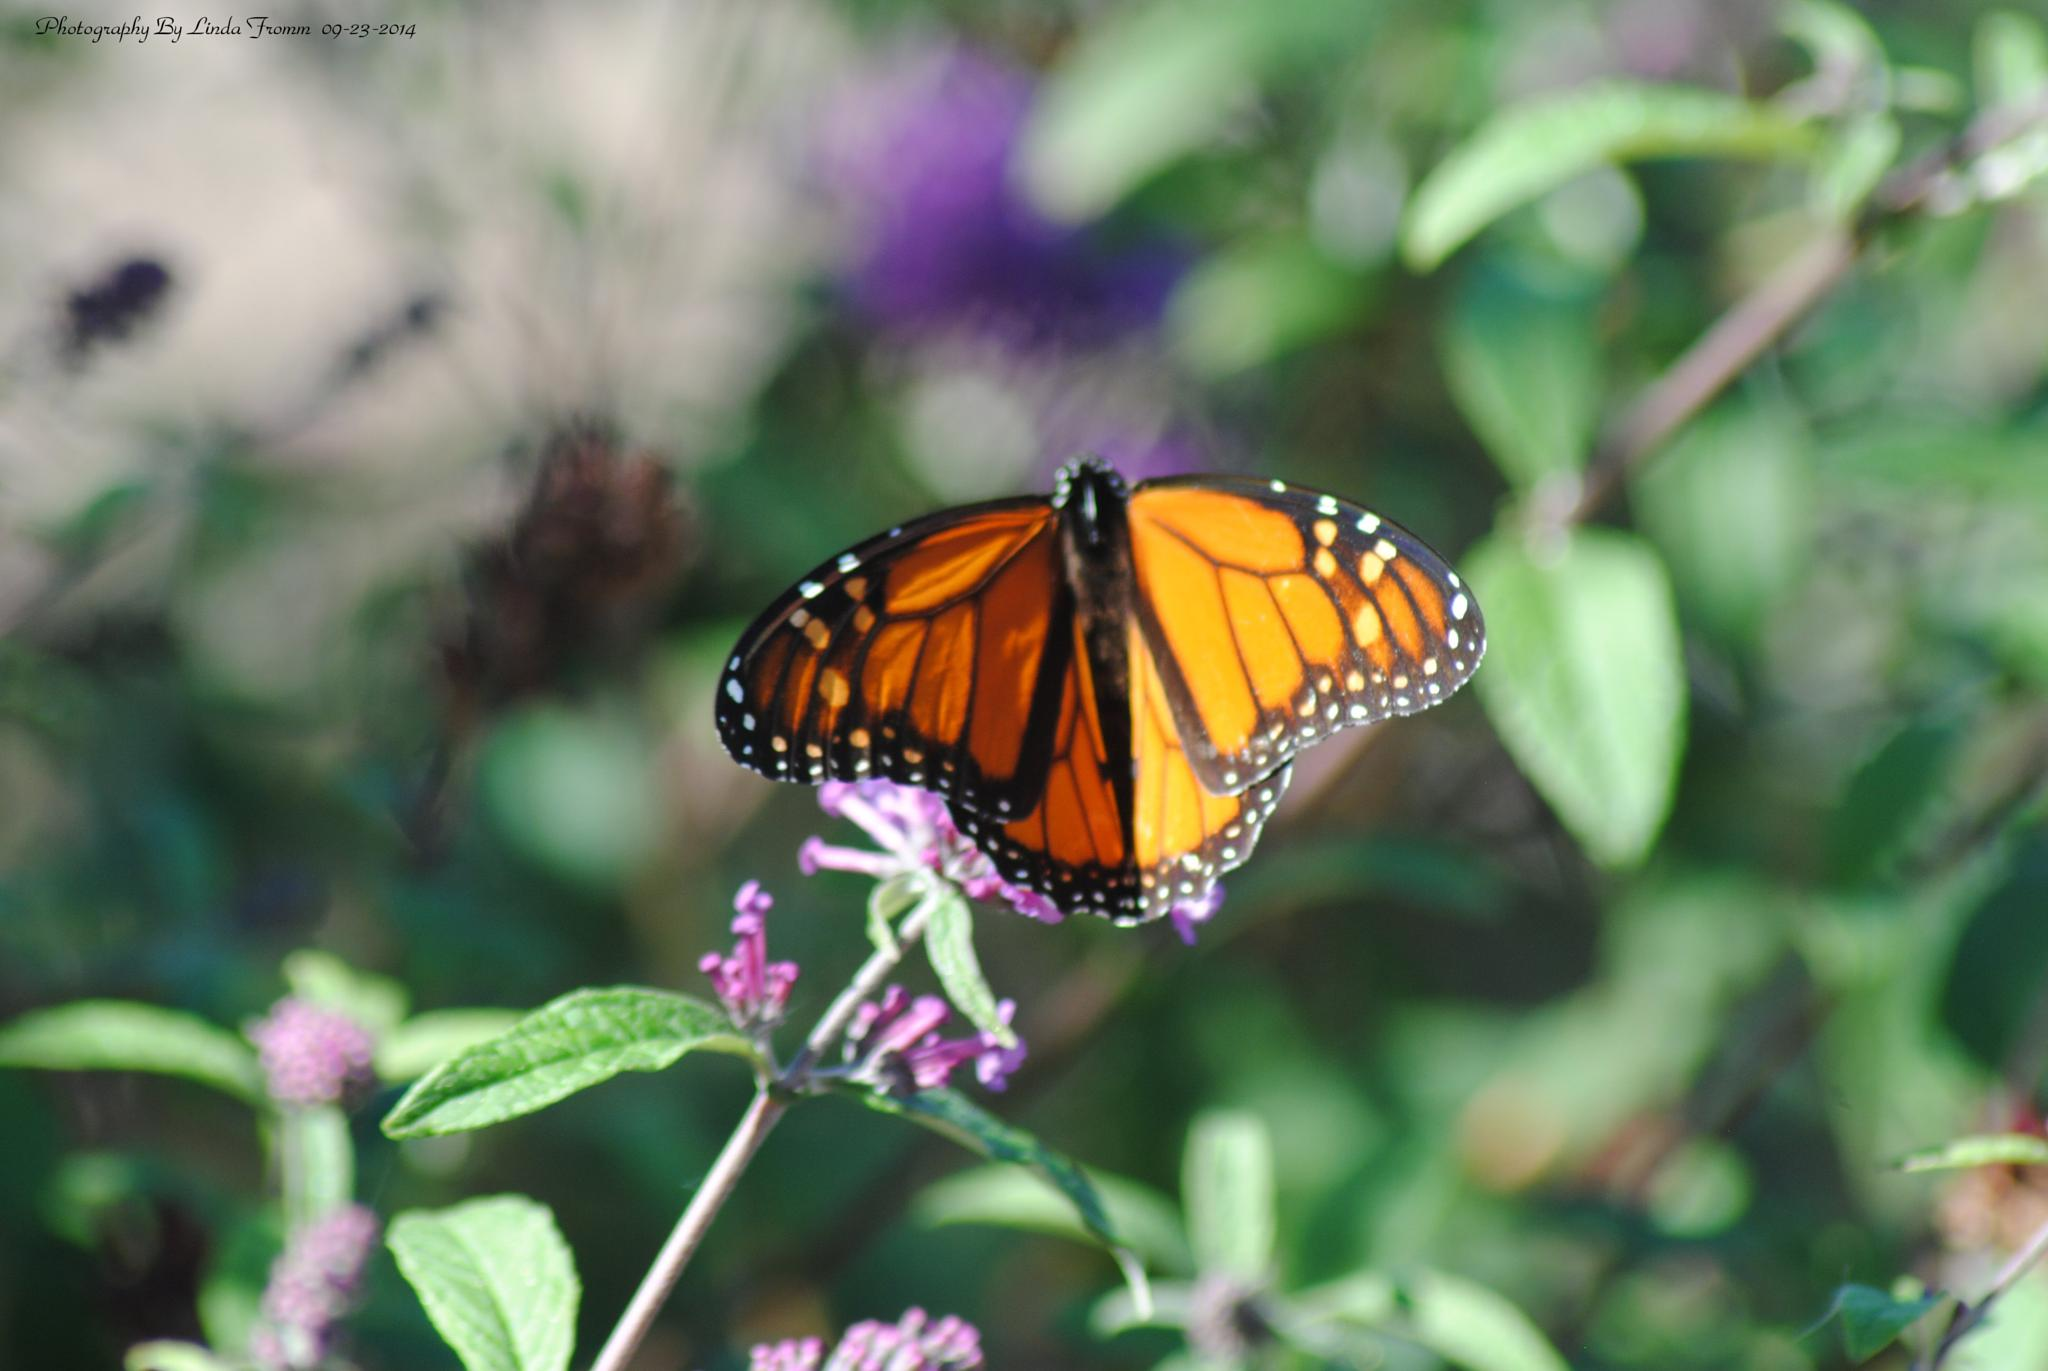 Butterfly by Linda Gifford